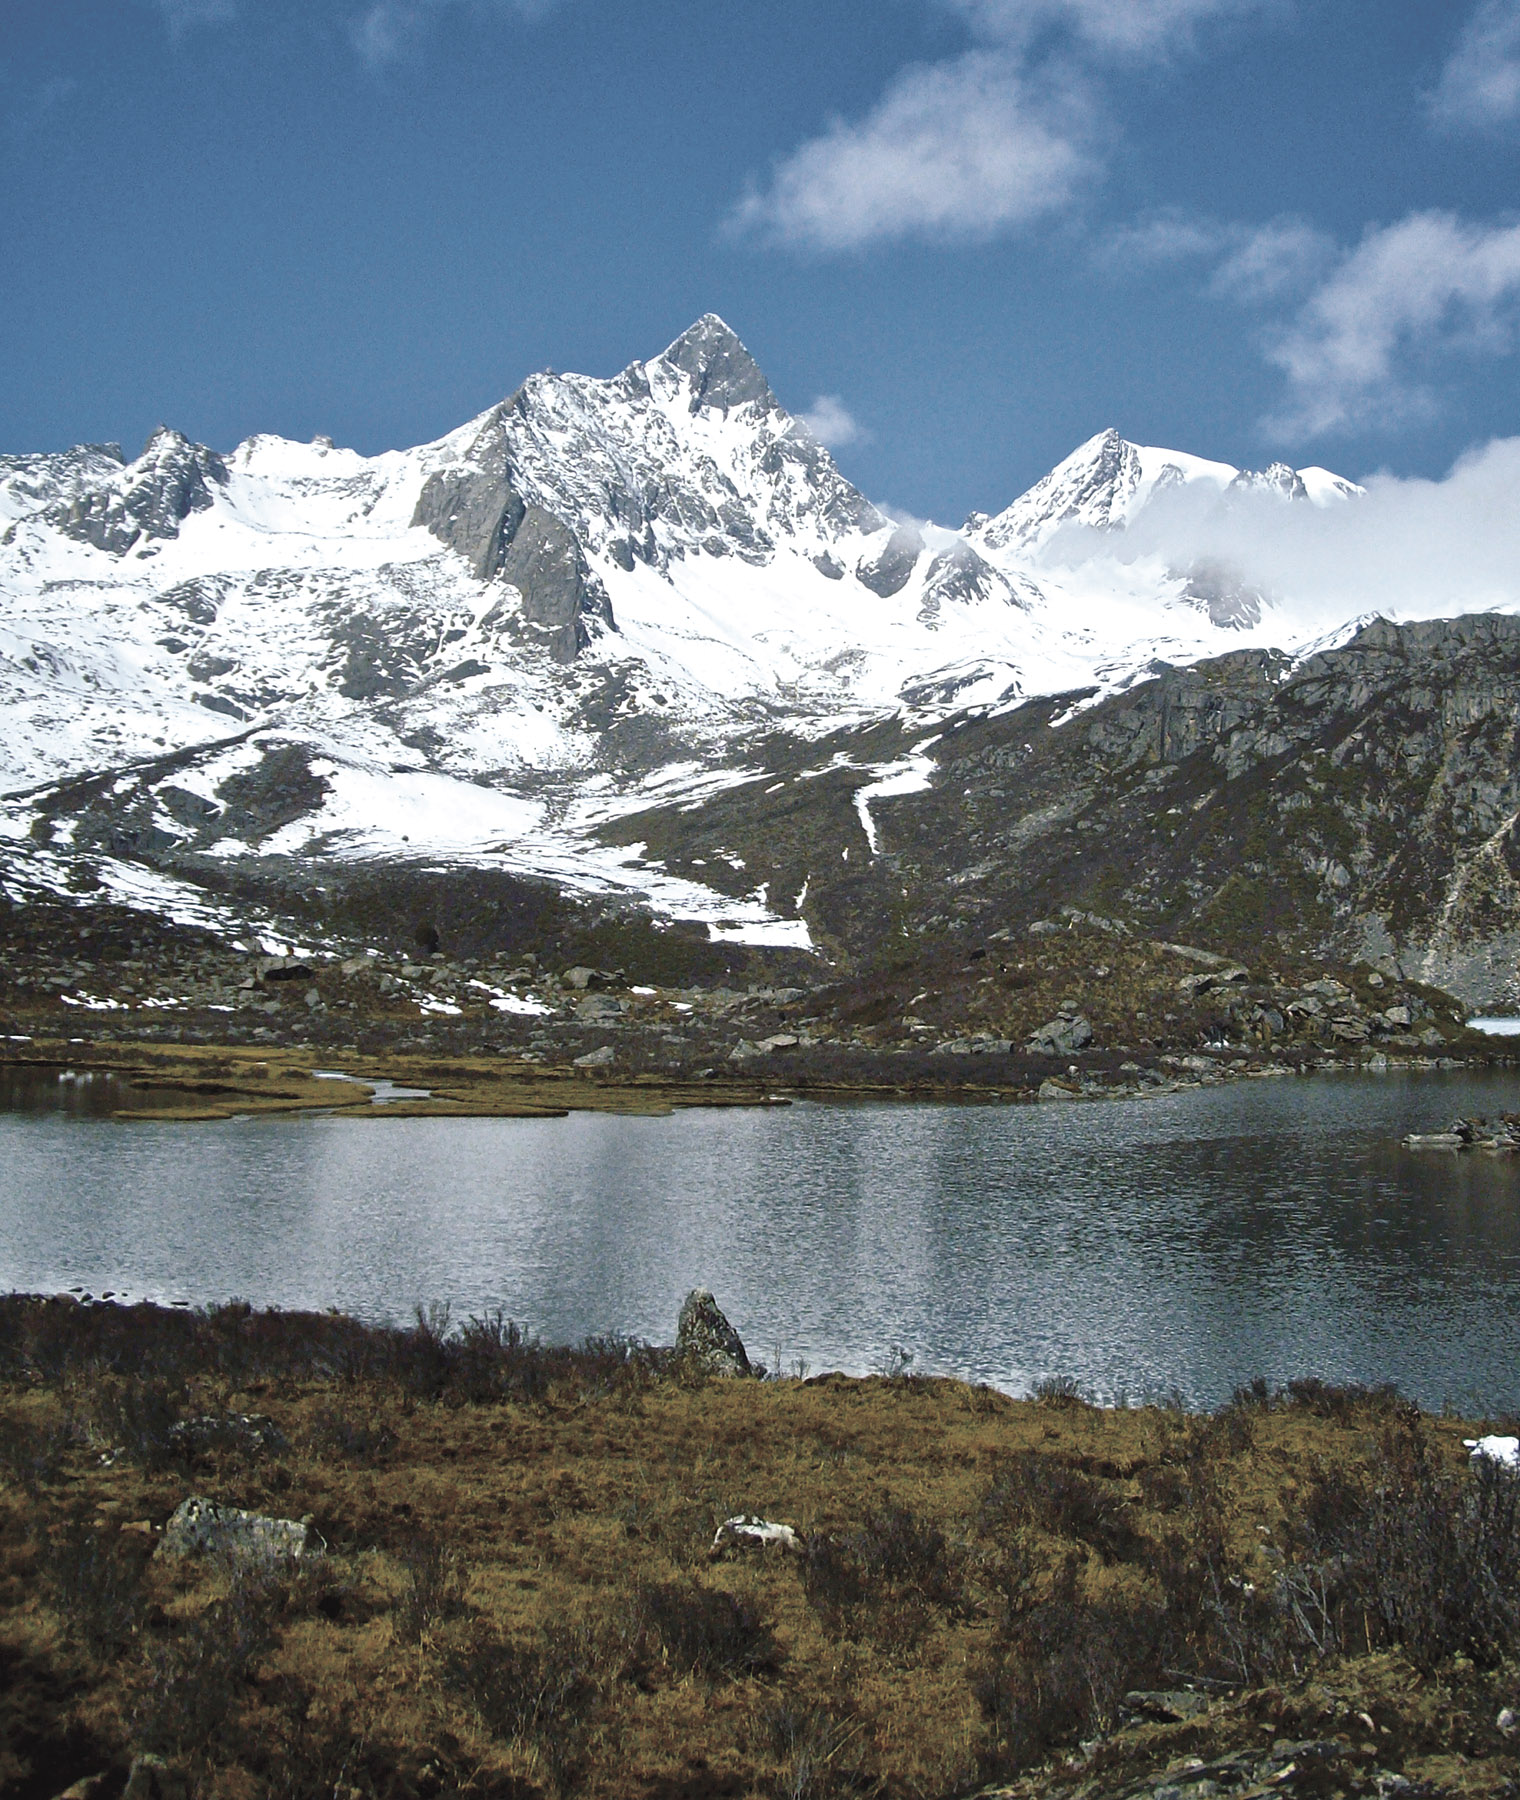 East face of Xiaqiangla and unnamed peak (right) seen from the shores of Da Haize. Route of first ascent of Xiaqiangla climbed hidden face behind steep right skyline ridge.